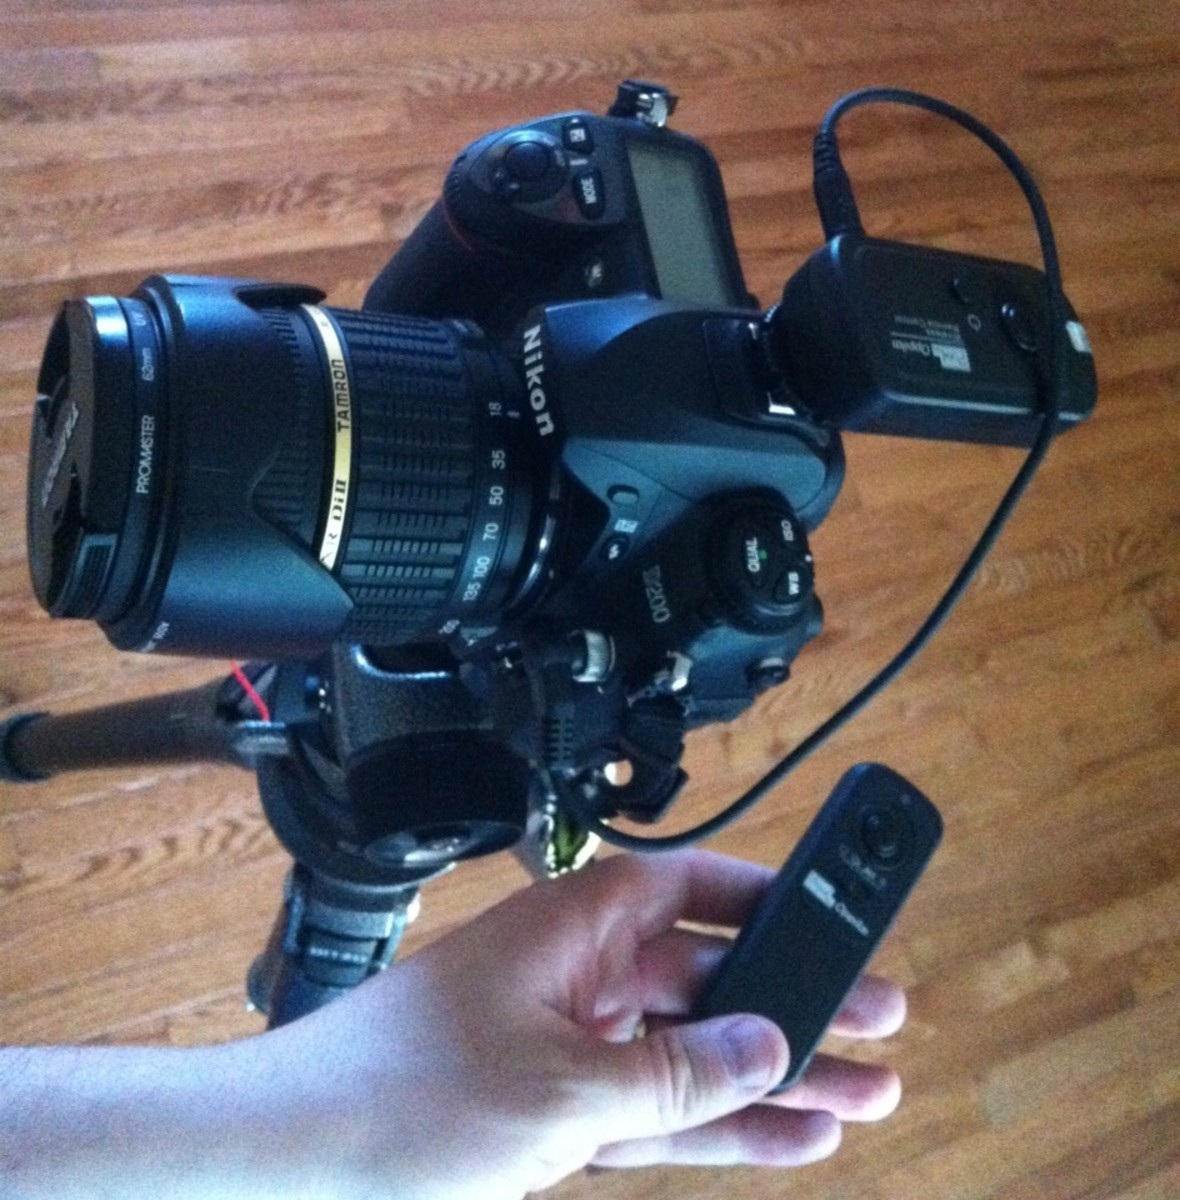 Review of the Pixel Oppilas Wireless Shutter Remote Control RW-221 for Nikon Cameras